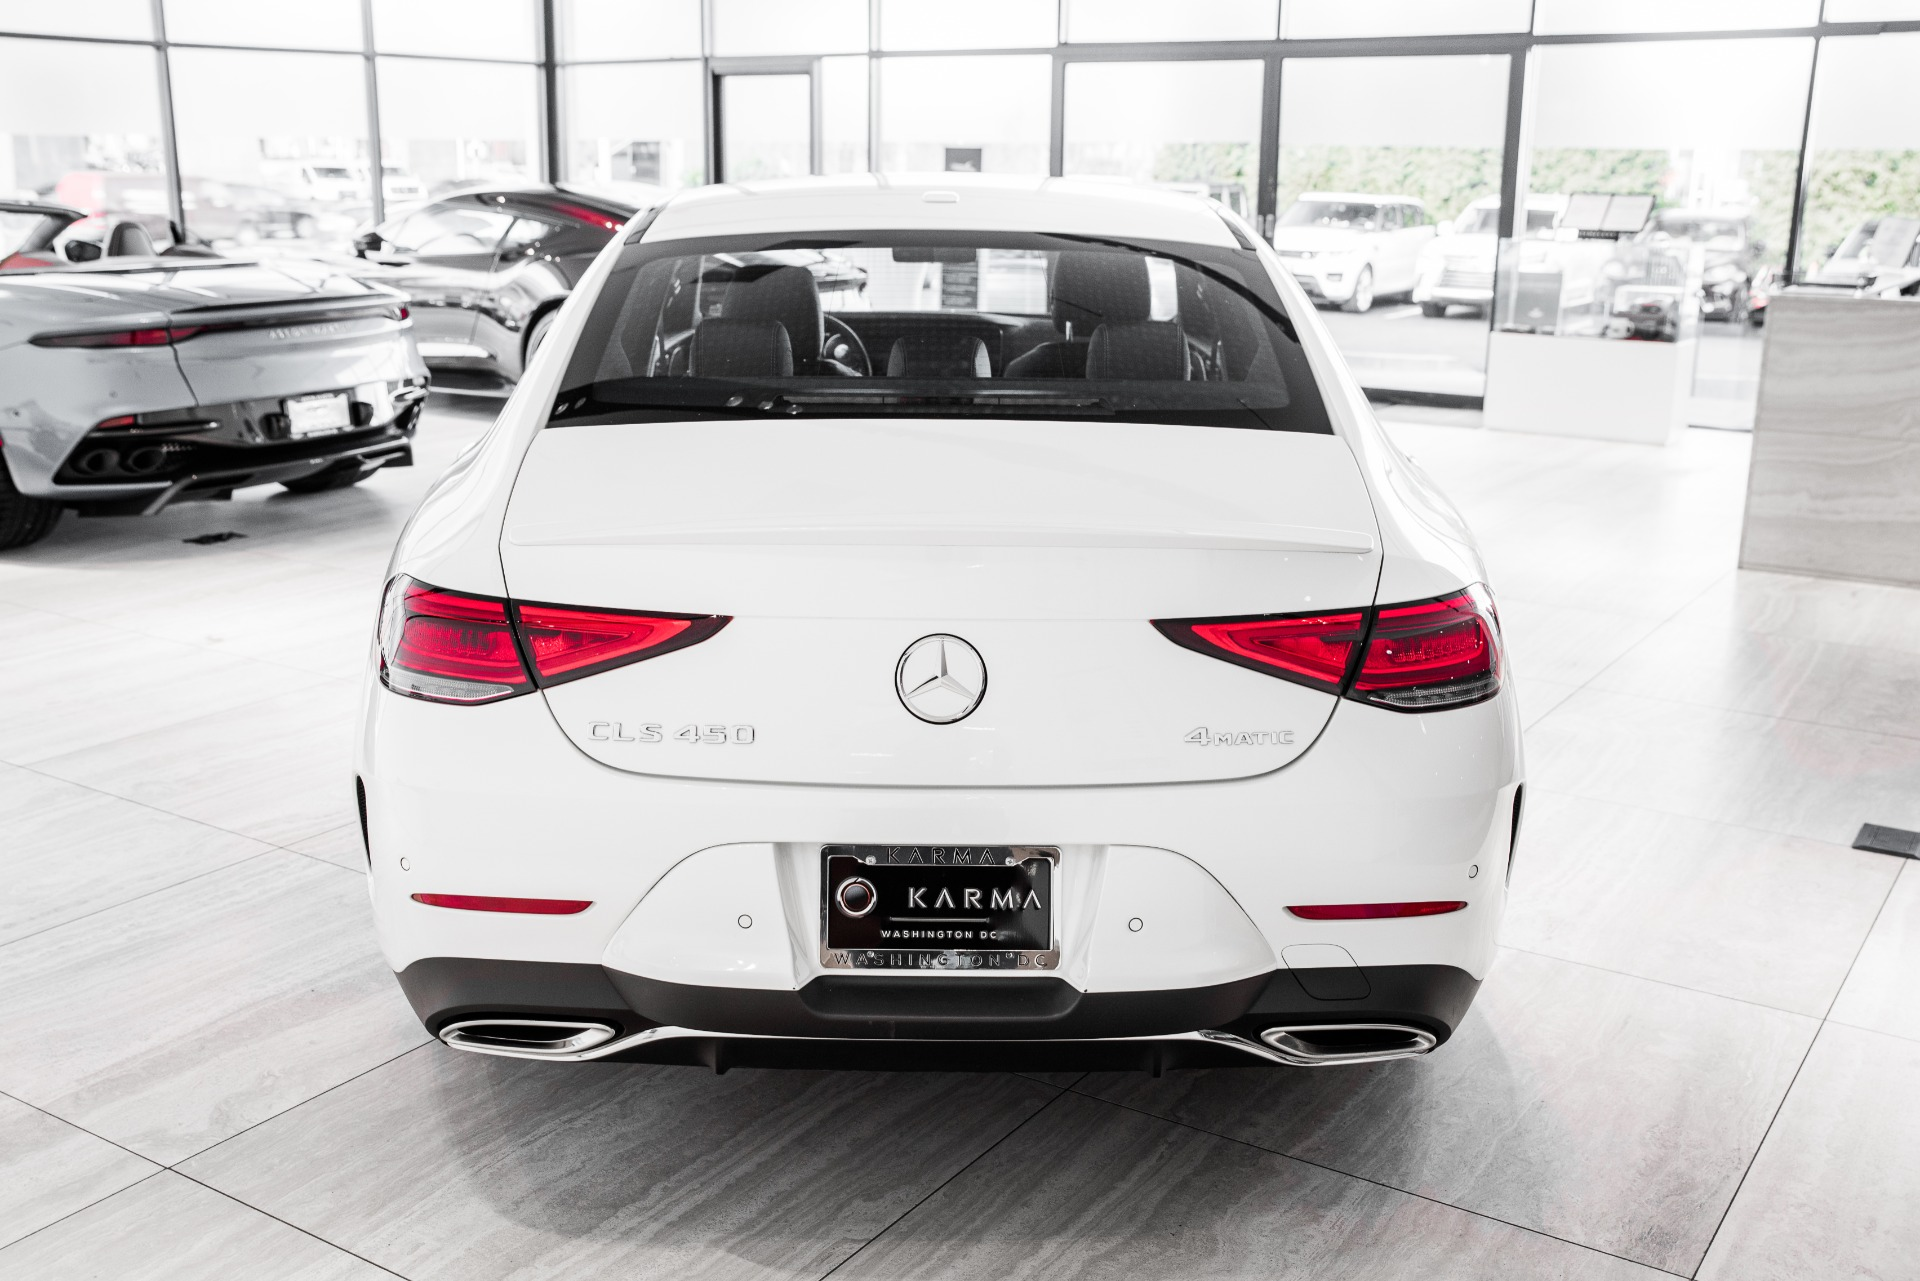 Used-2019-Mercedes-Benz-CLS-CLS-450-4MATIC